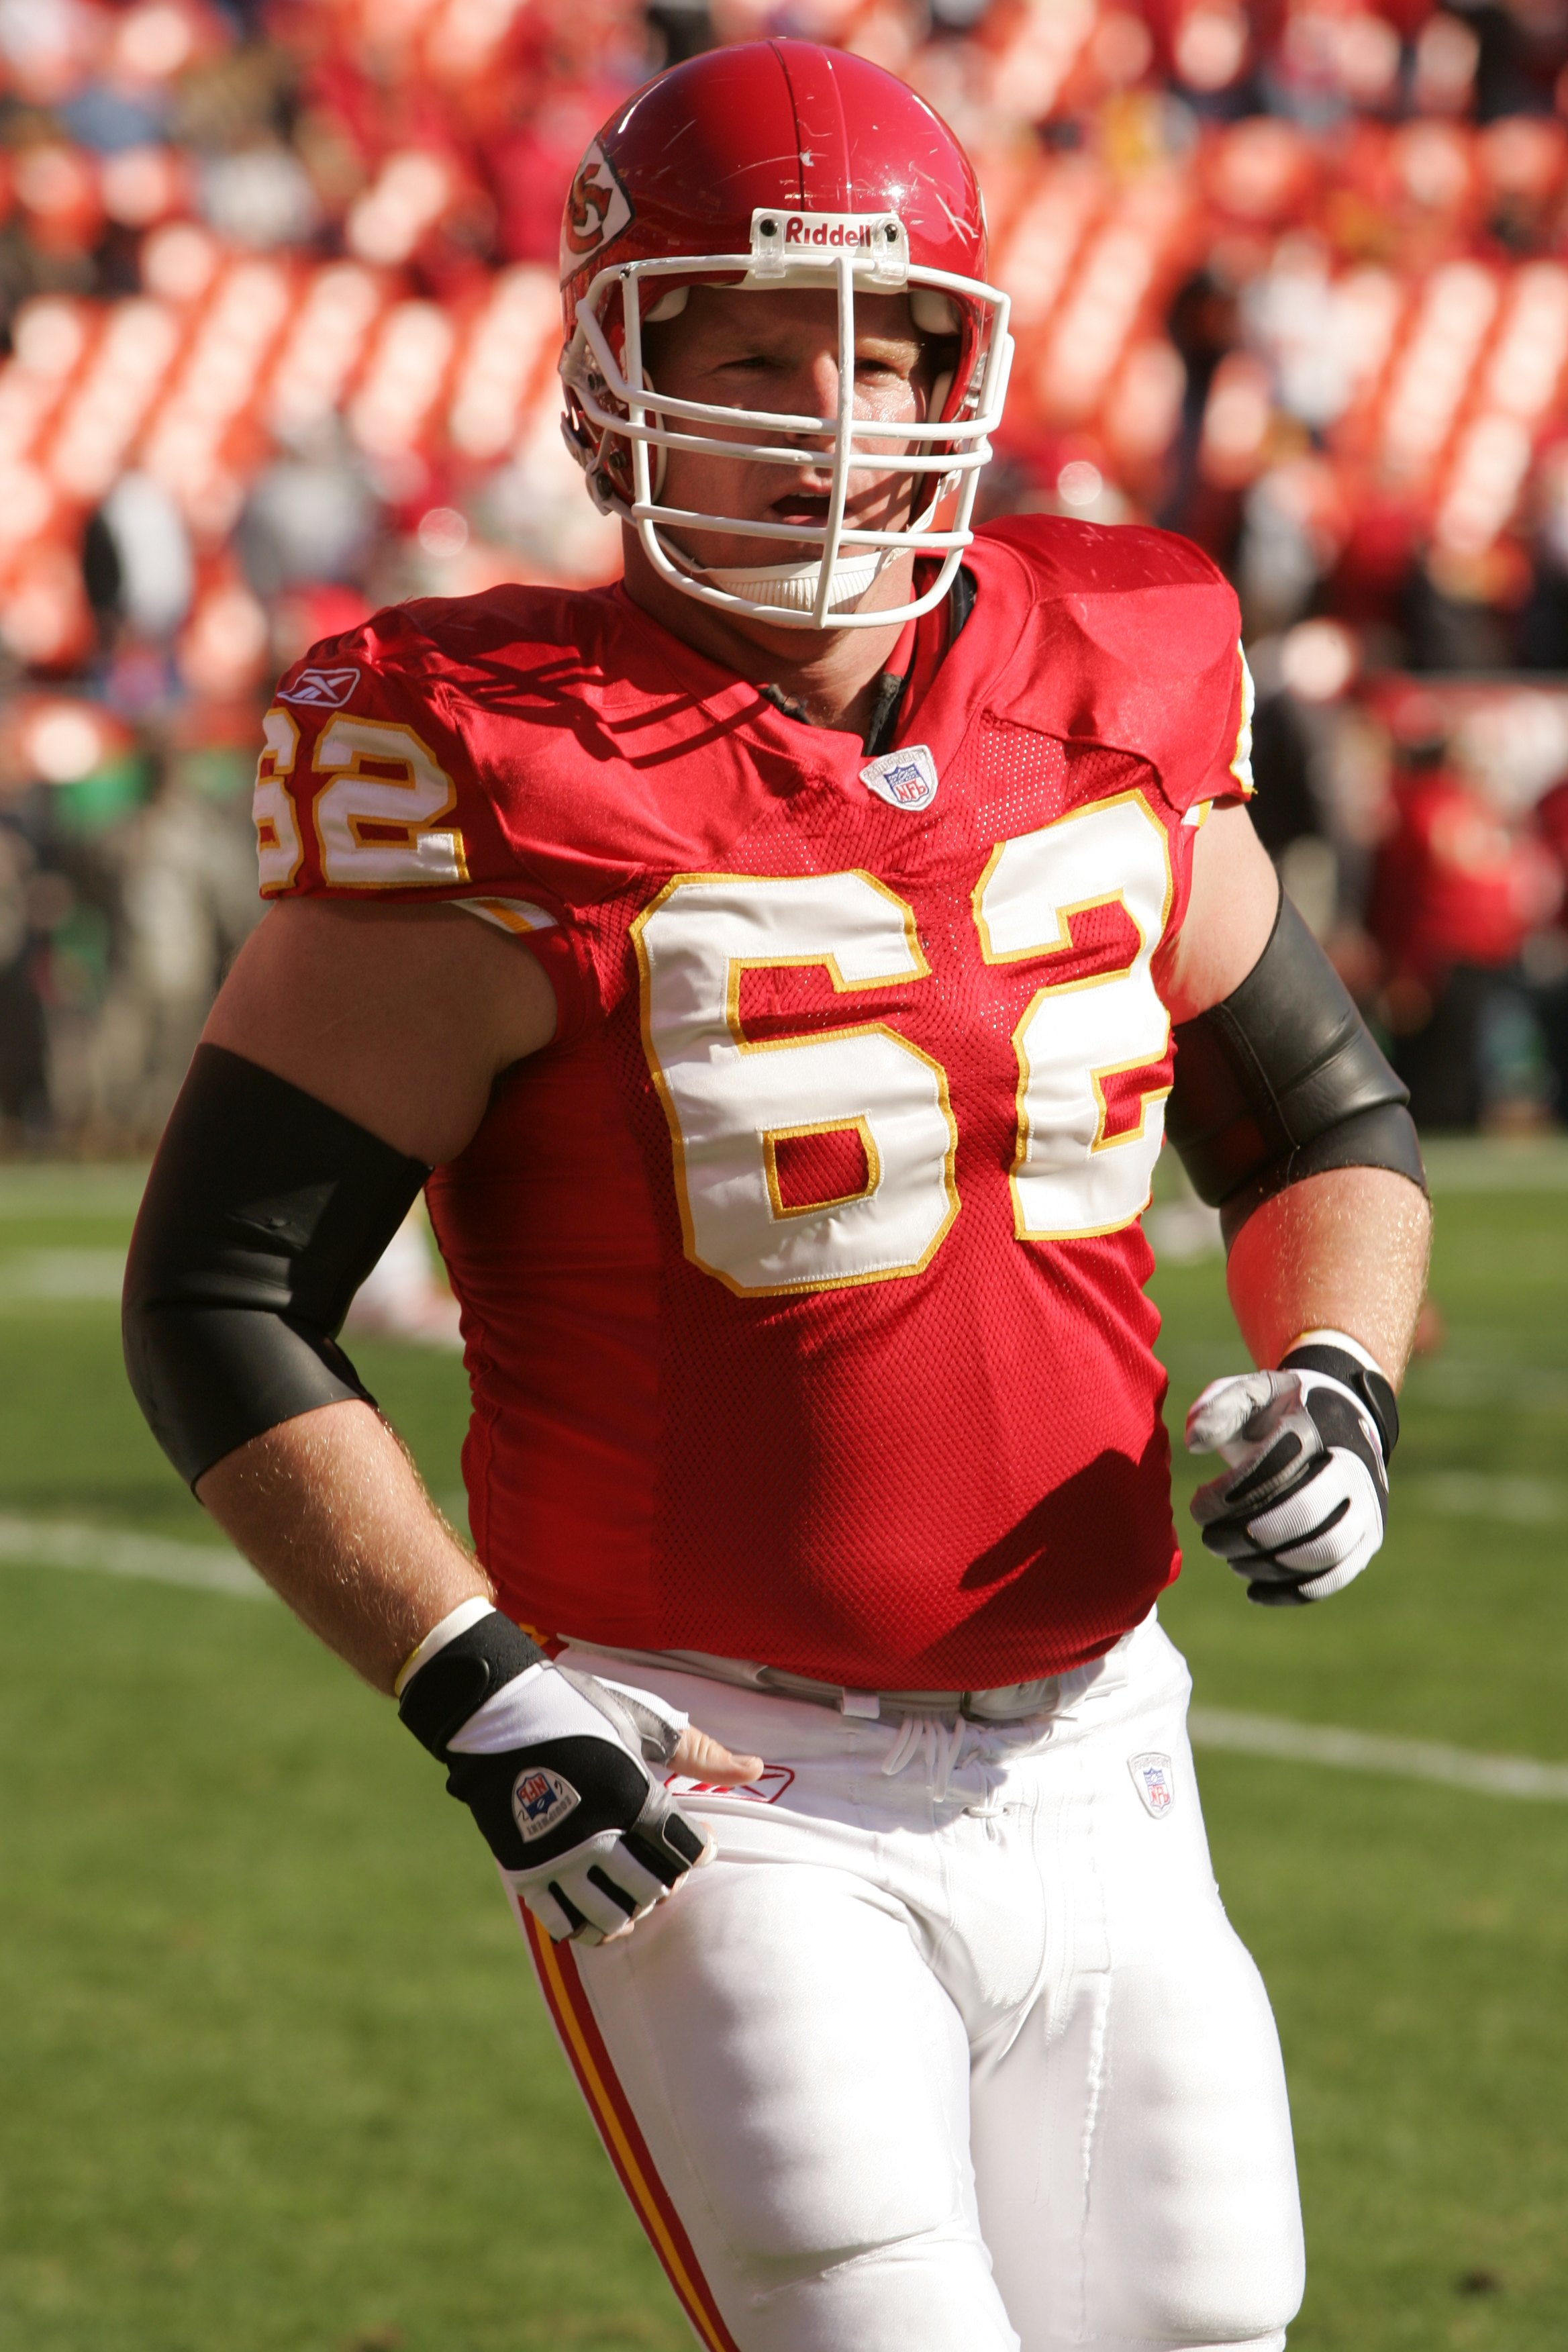 KANSAS CITY, MO - NOVEMBER 19:  Center Casey Wiegmann #62 of the Kansas City Chiefs looks on against the Oakland Raiders on November 19, 2006 at Arrowhead Stadium in Kansas City, Missouri.  The Chiefs won 17-13.  (Photo by Brian Bahr/Getty Images)